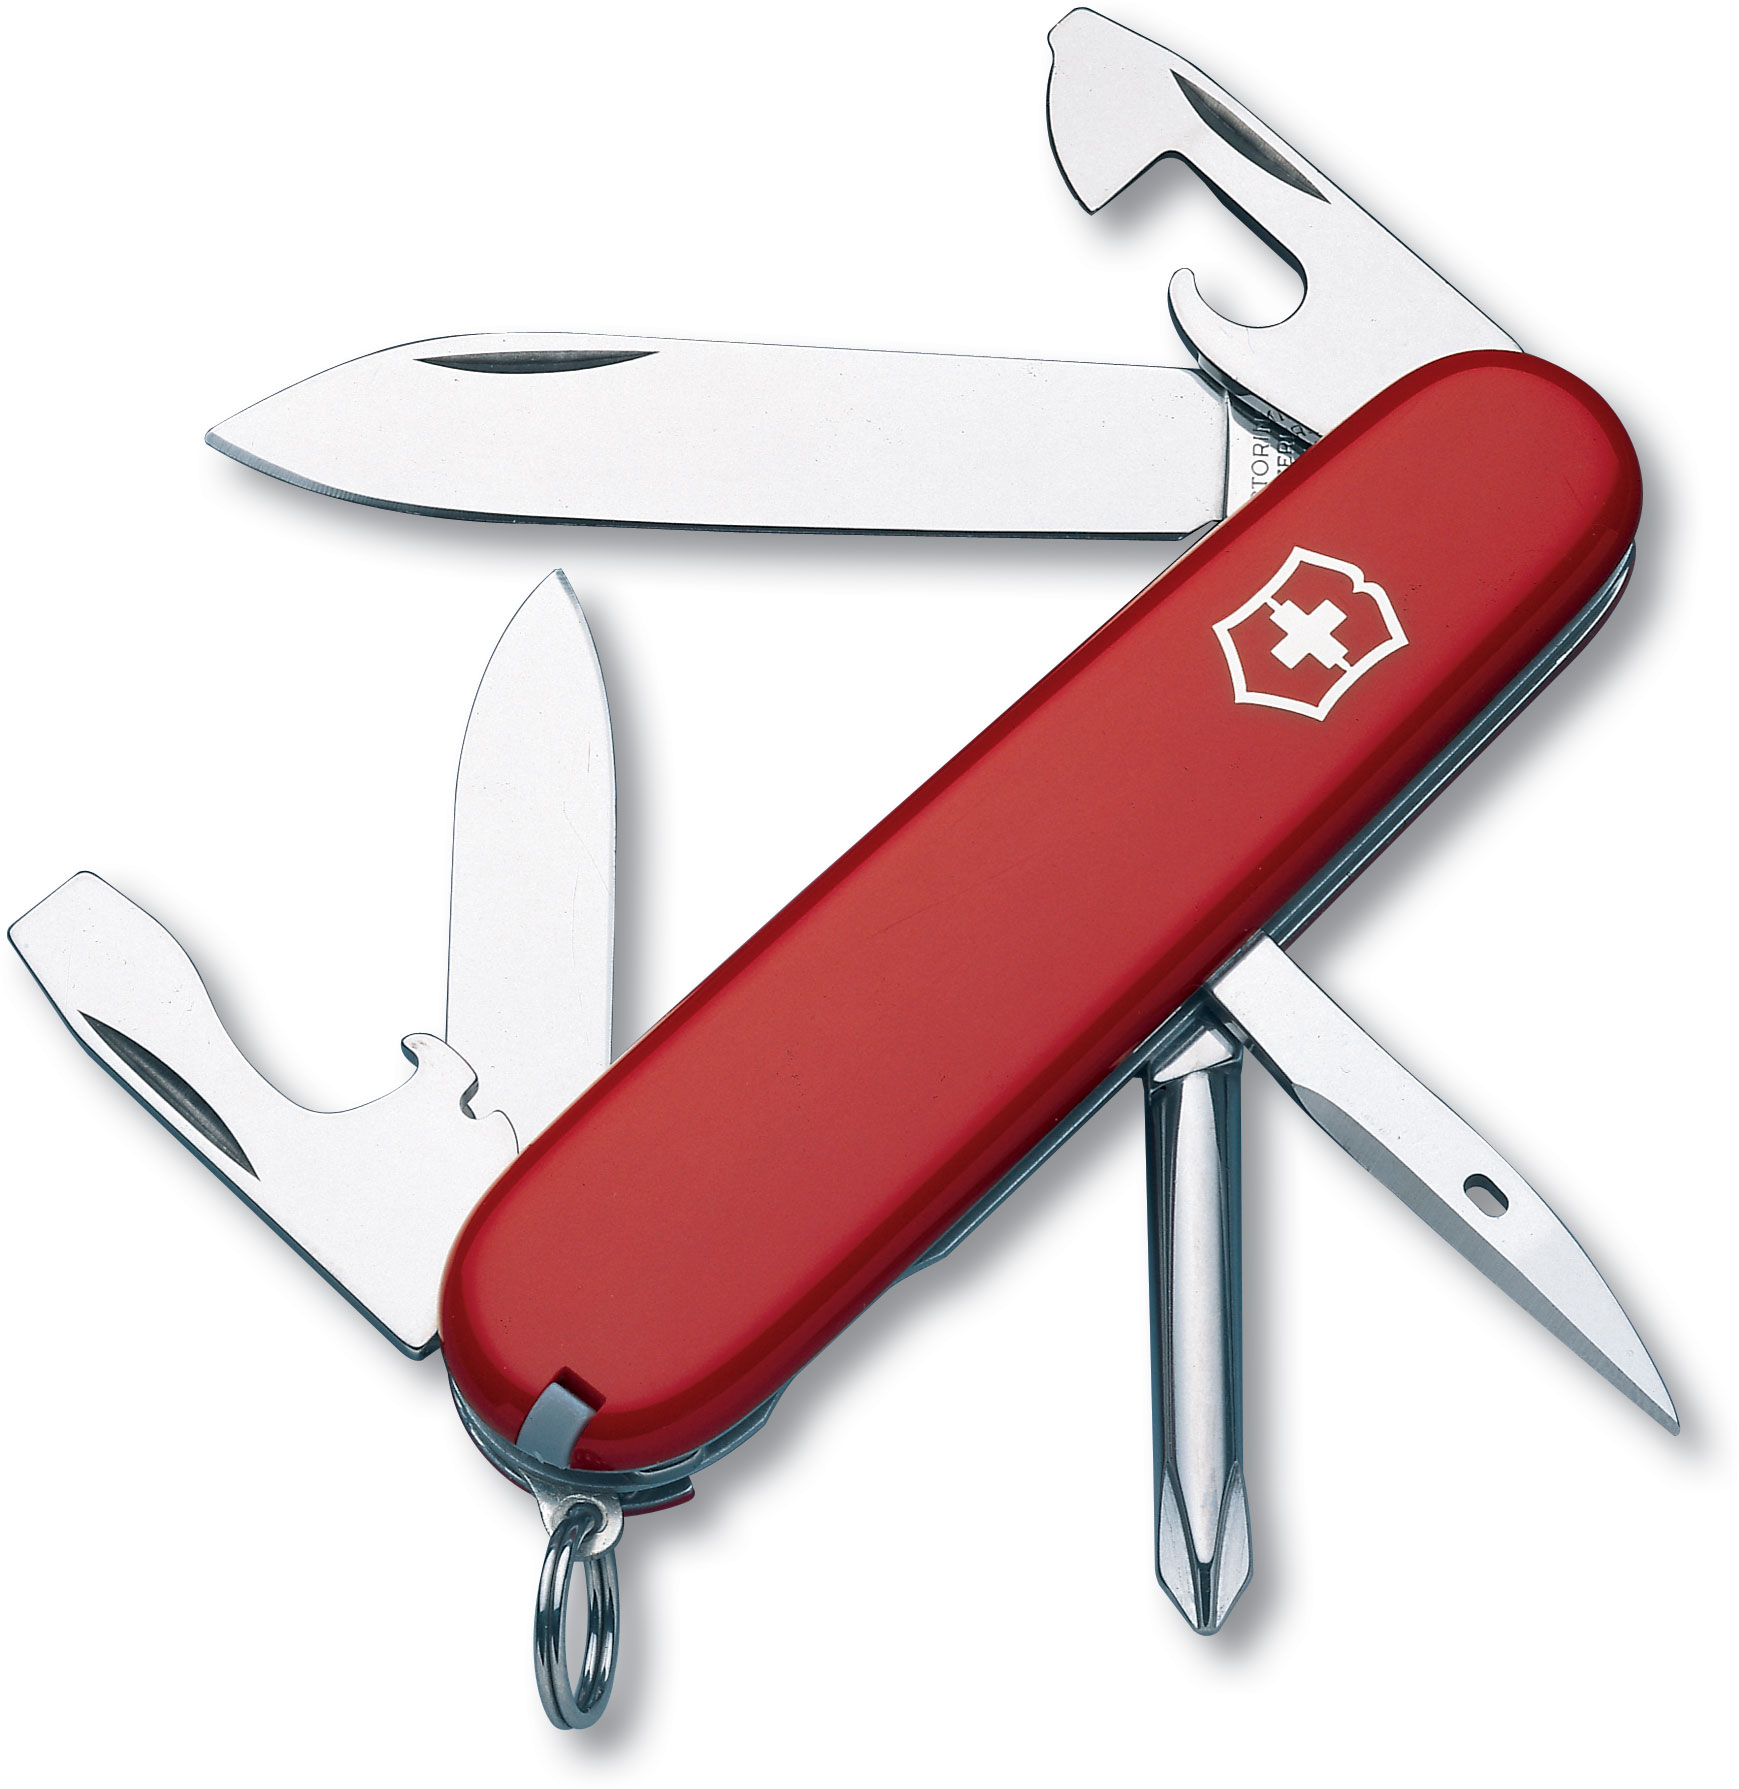 Victorinox Swiss Army Tinker Multi-Tool, Red, 3.58 inch Closed